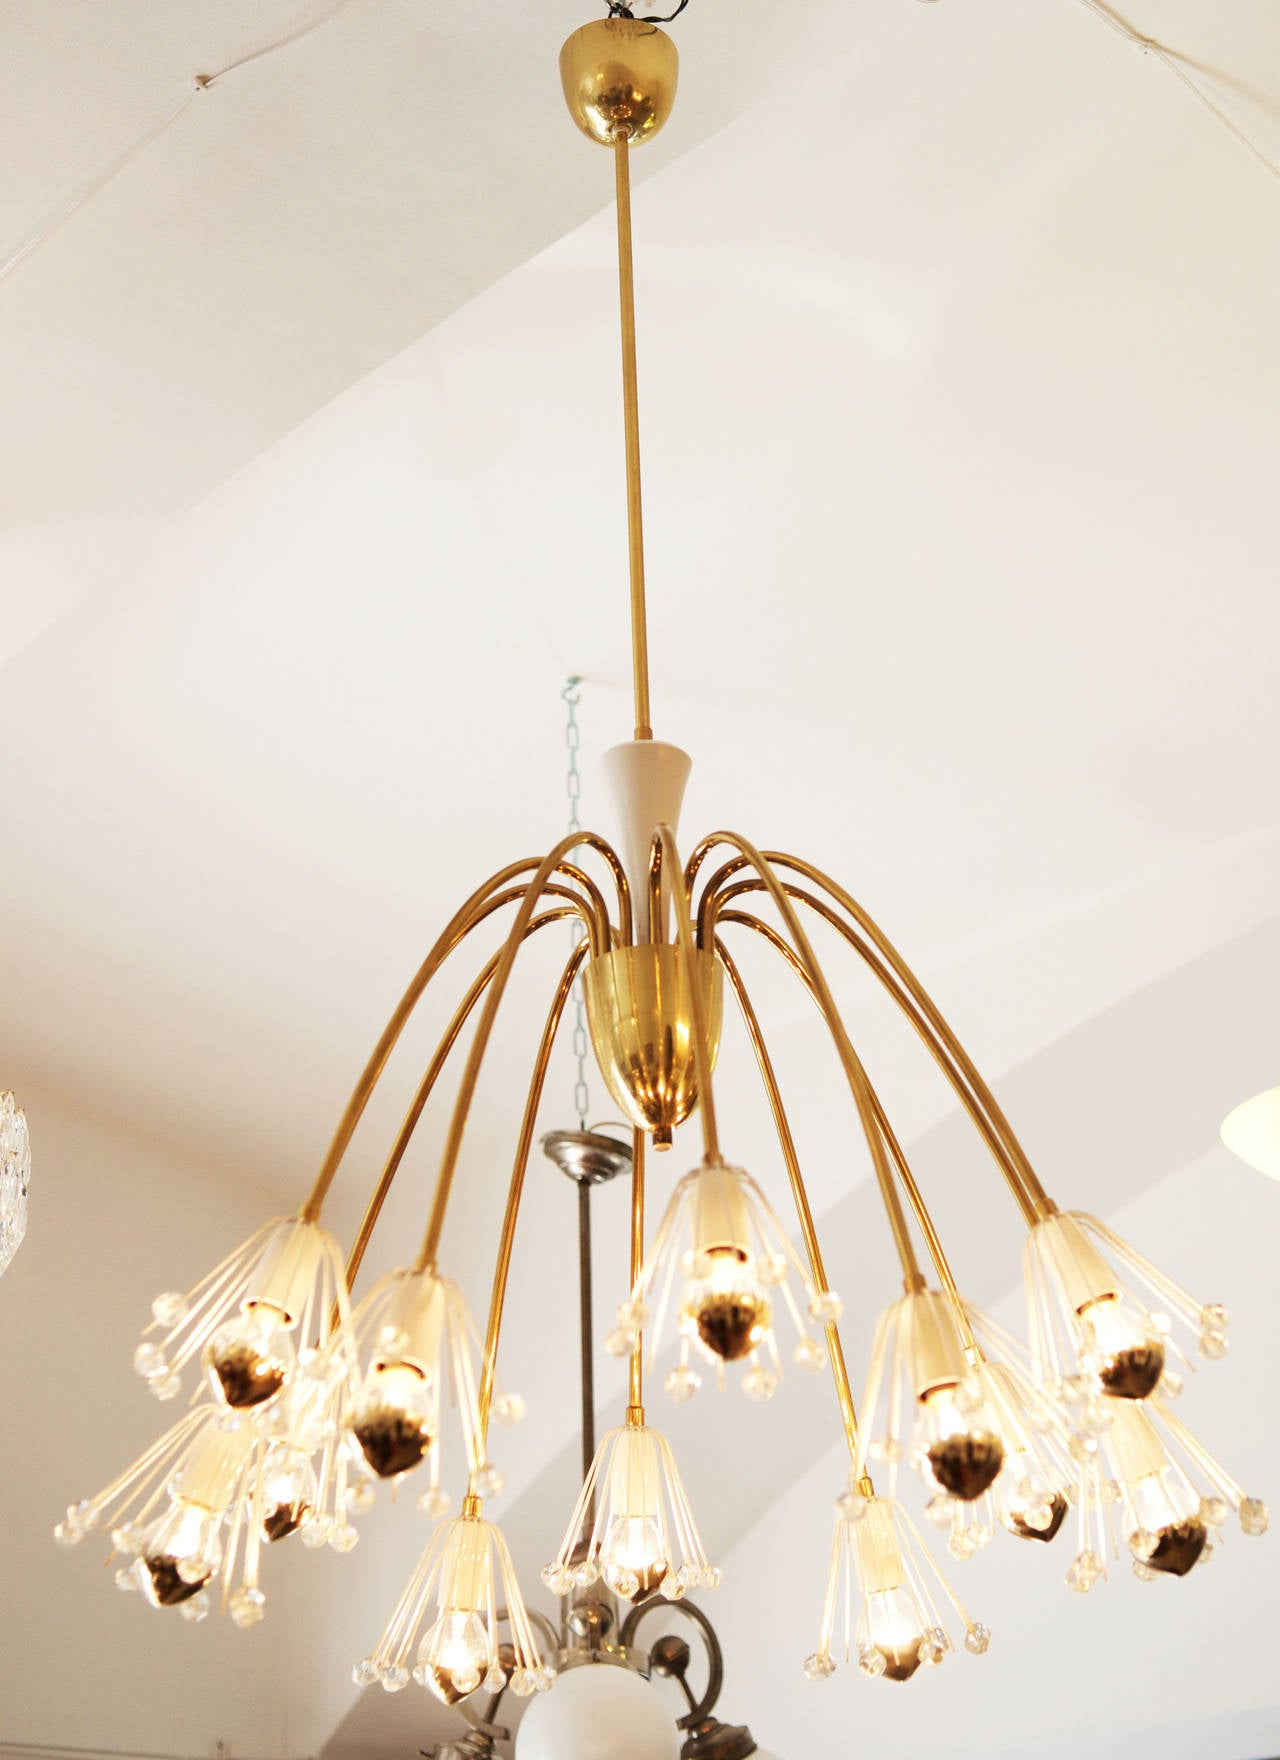 Large Brass Chandelier By Emil Stejnar For Rupert Nikoll For Sale 4